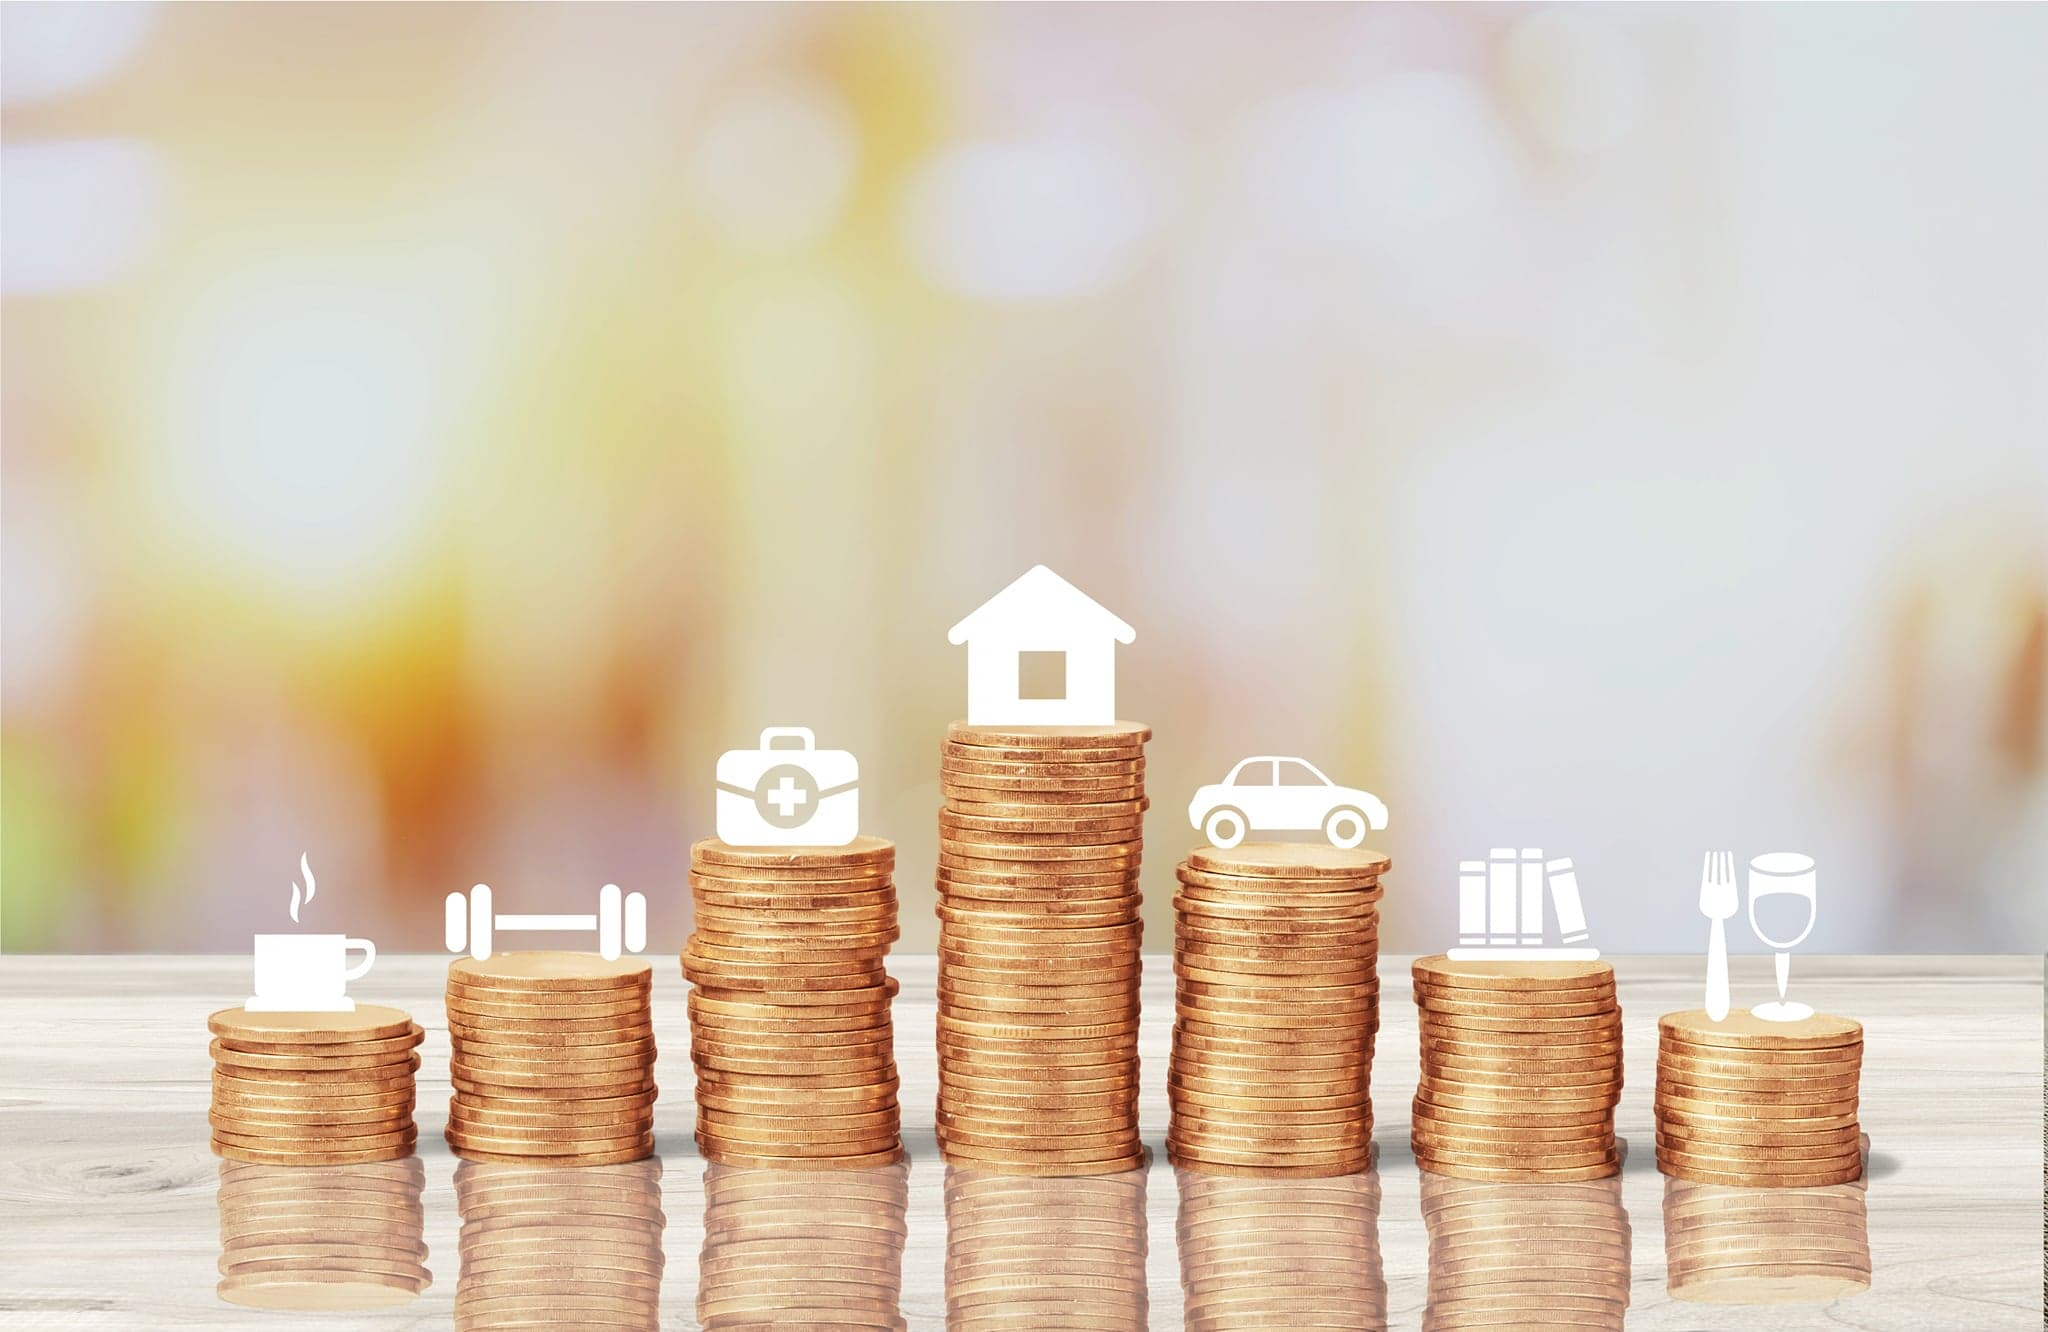 Financial Health: Getting out of debt and building a solid financial foundation